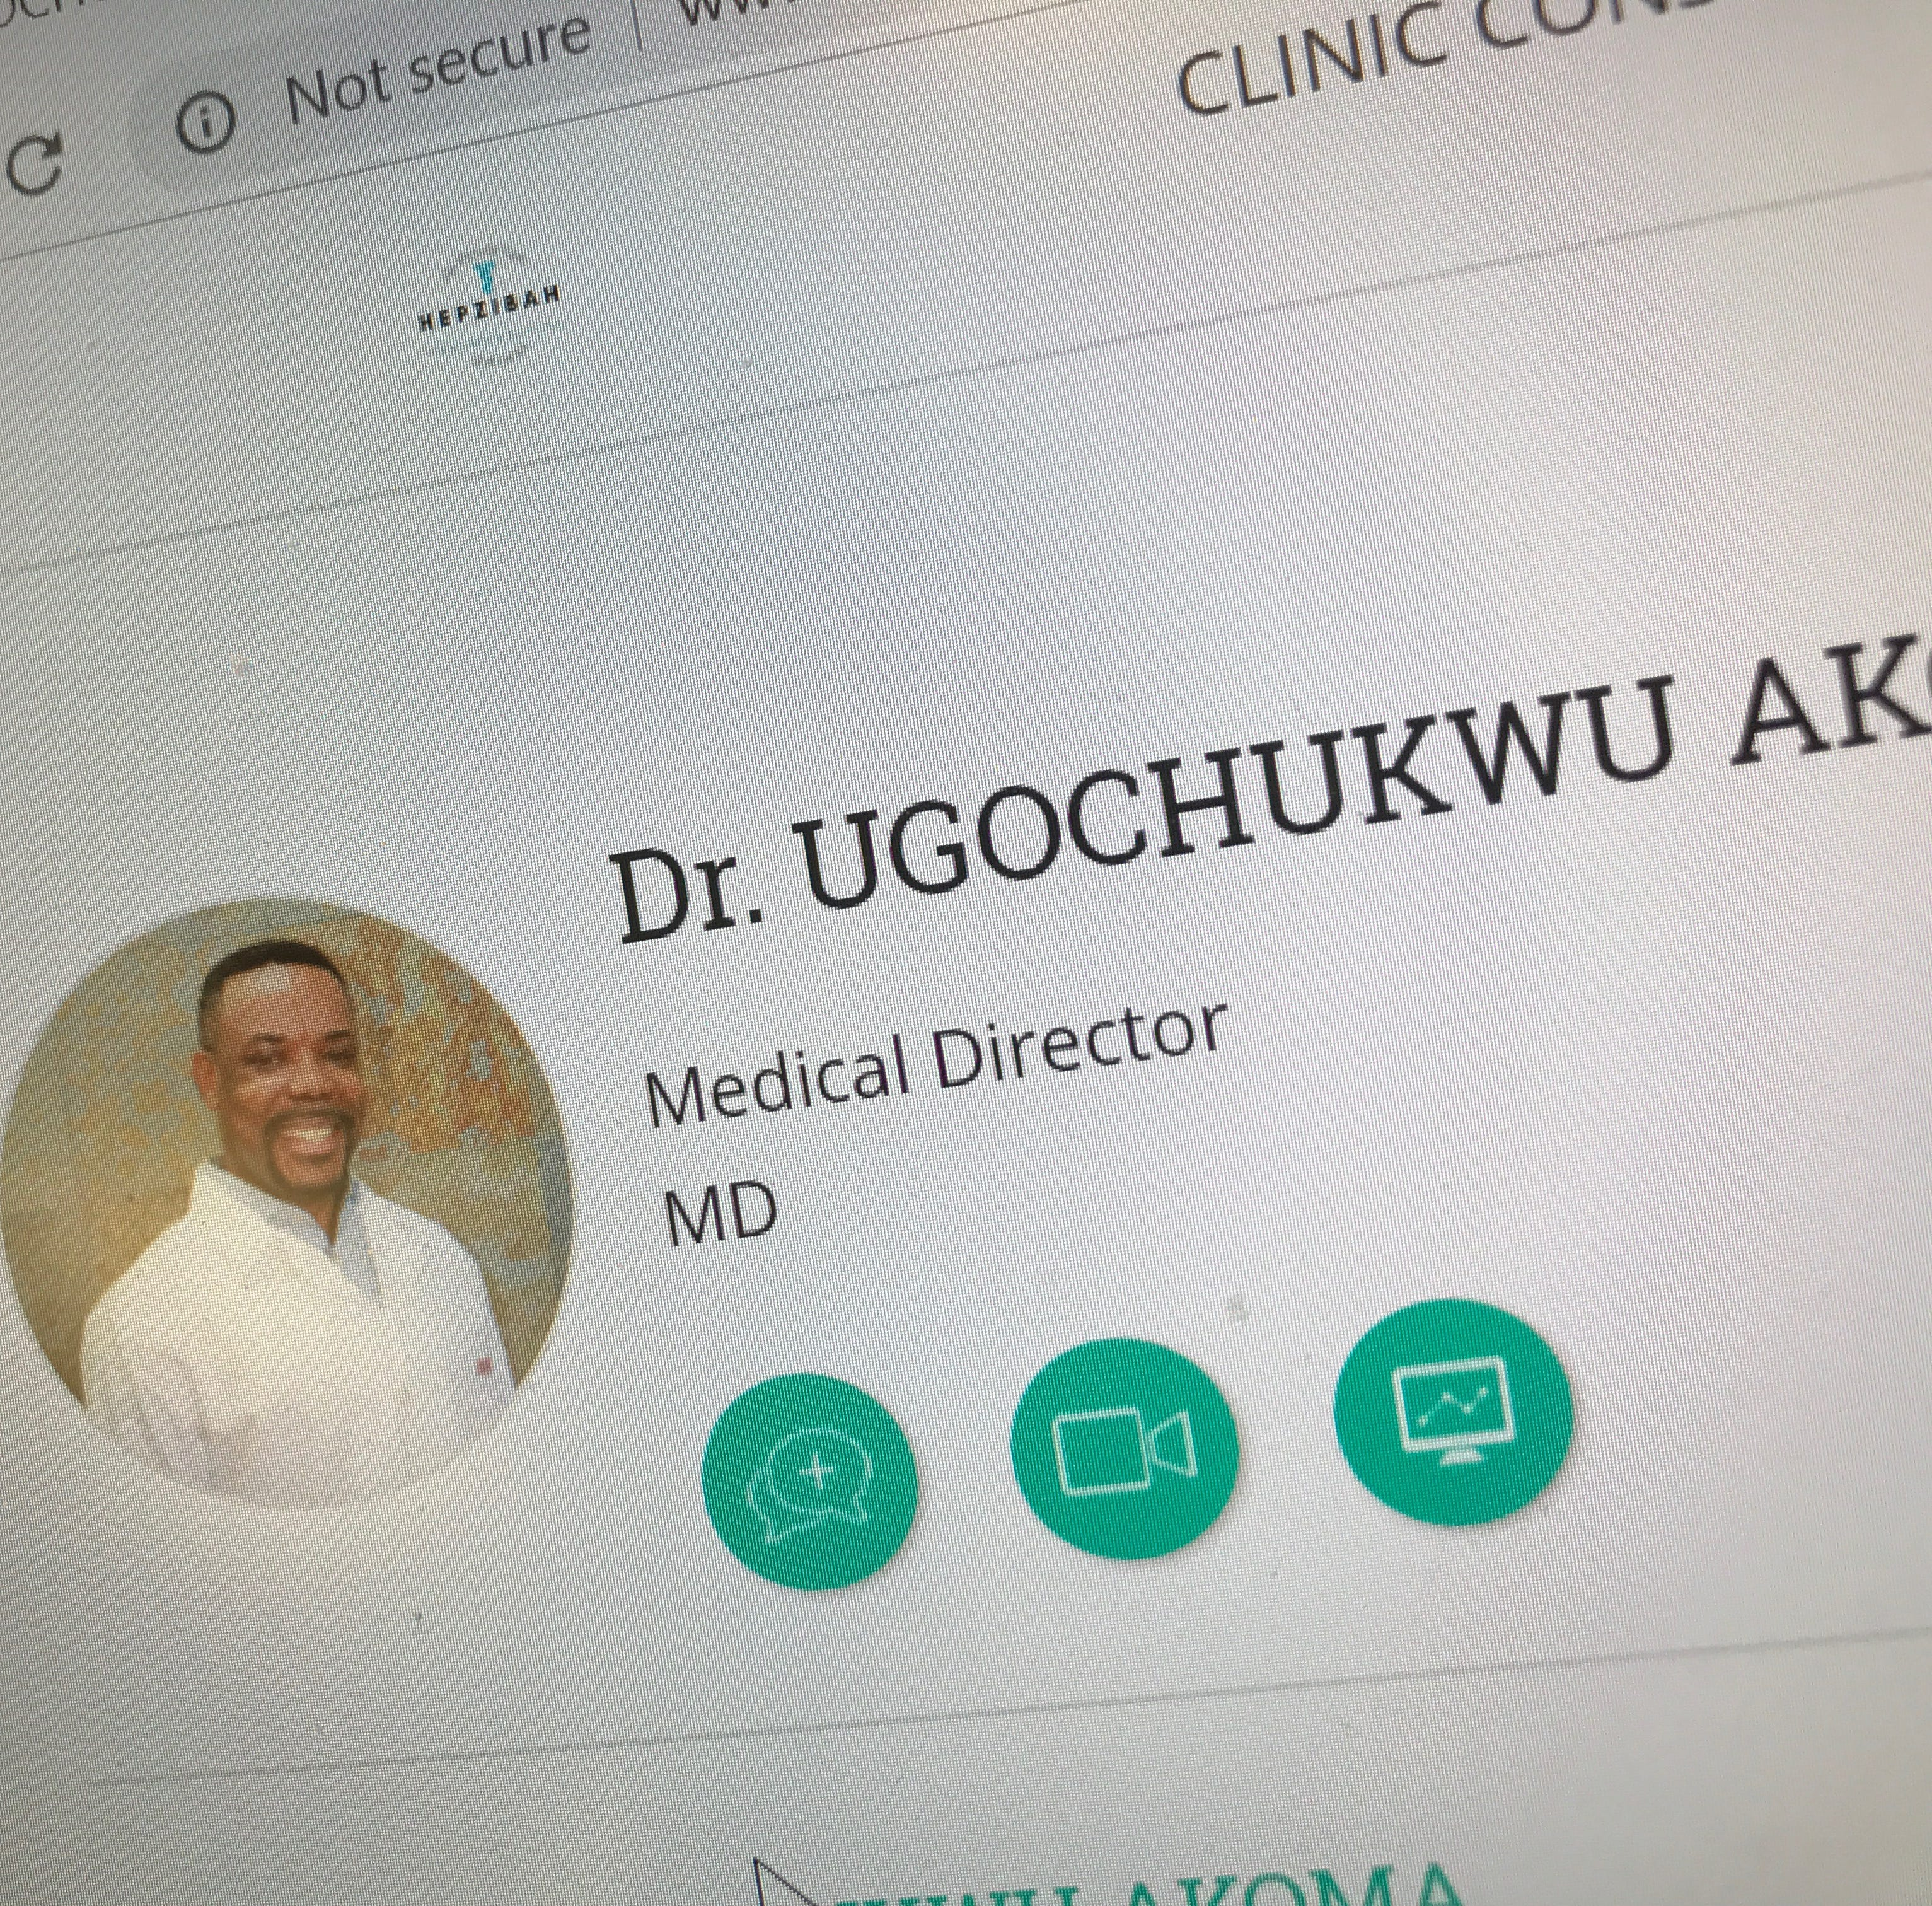 Dr. Ugochukwu Akoma, accused of sexual harassment, practicing on Guam